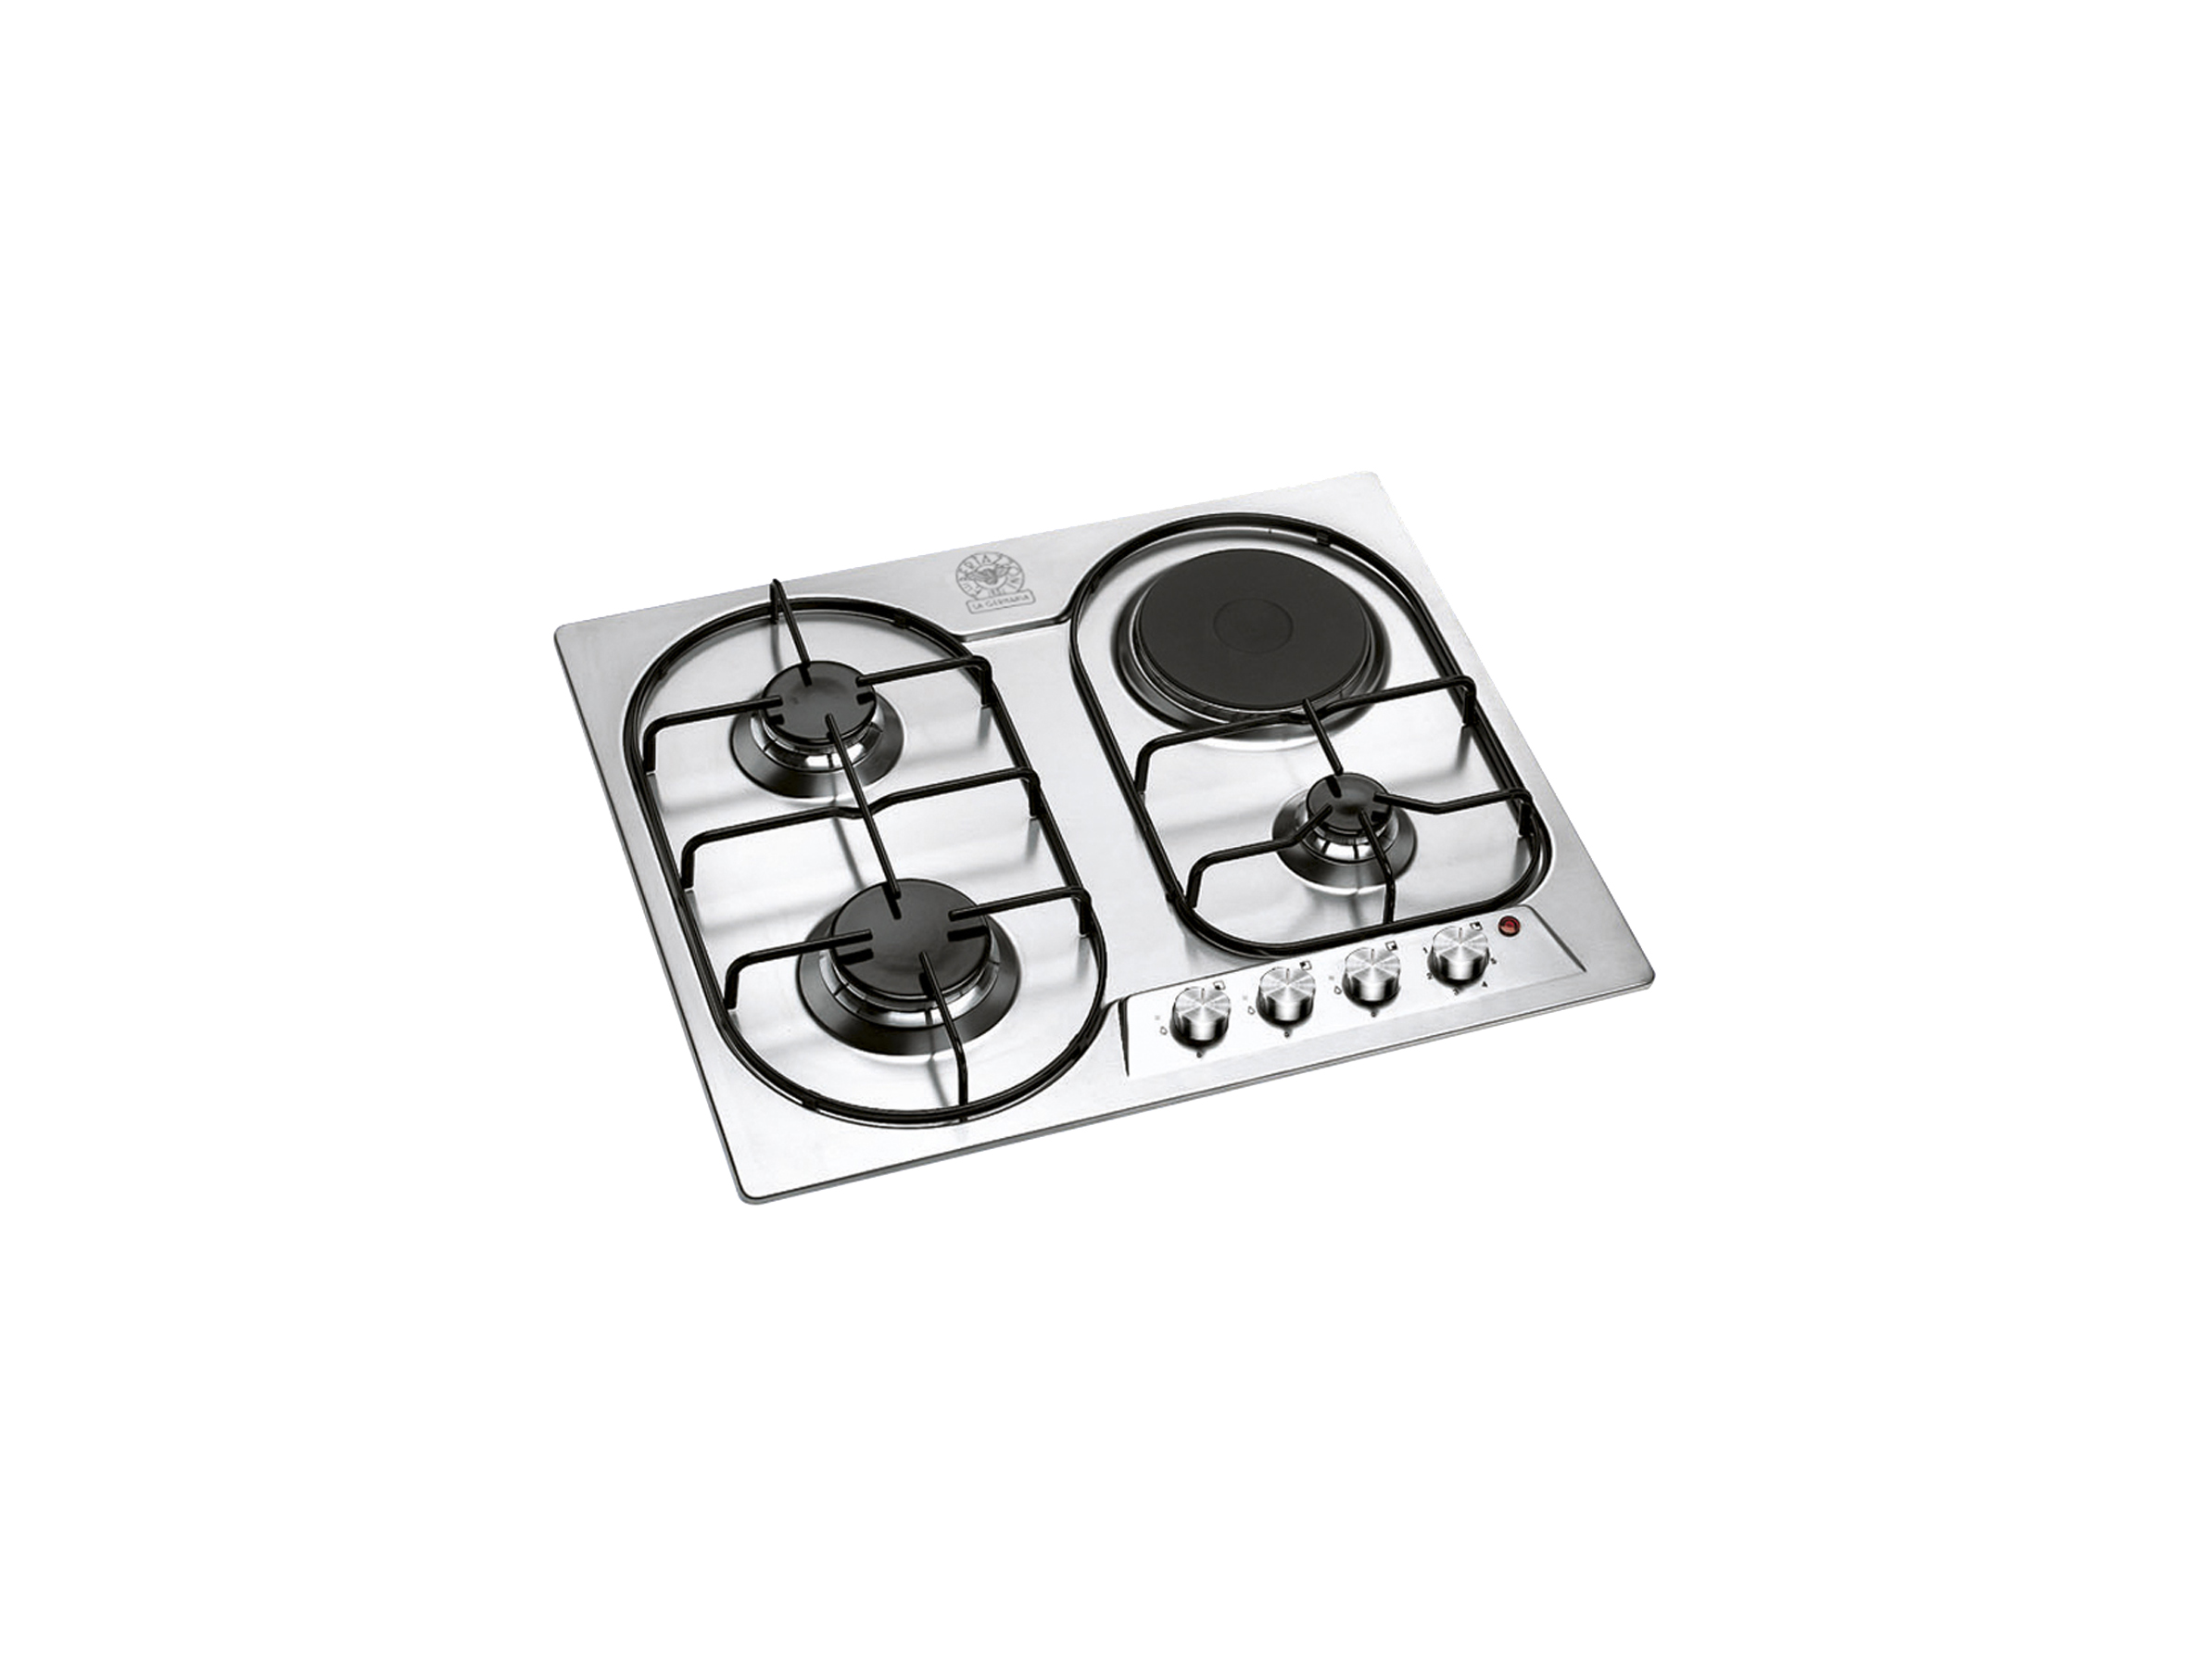 60 3-Burners 1 Electric Hotplate Hob | Bertazzoni La Germania - Stainless